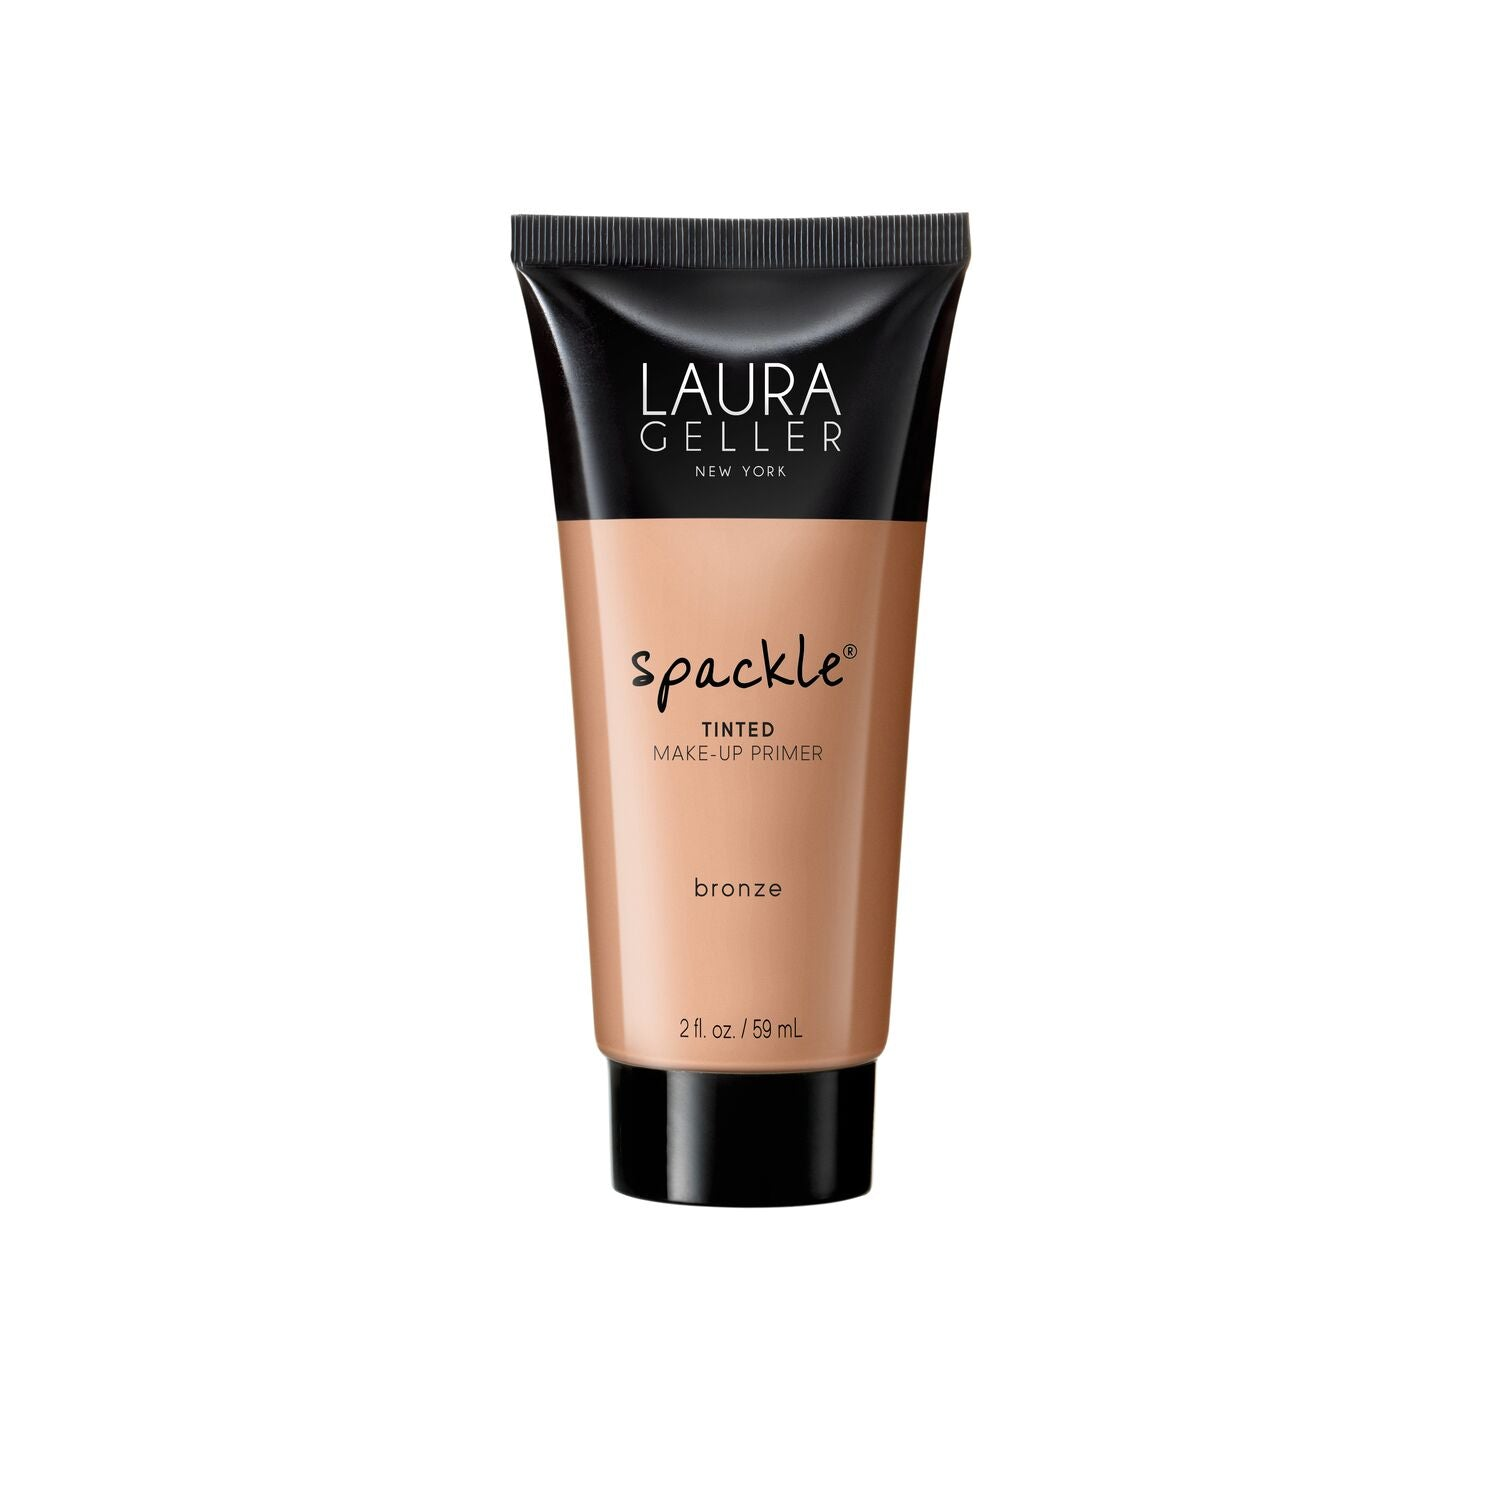 Spackle Tinted Under Make-Up Primer (Bronze)